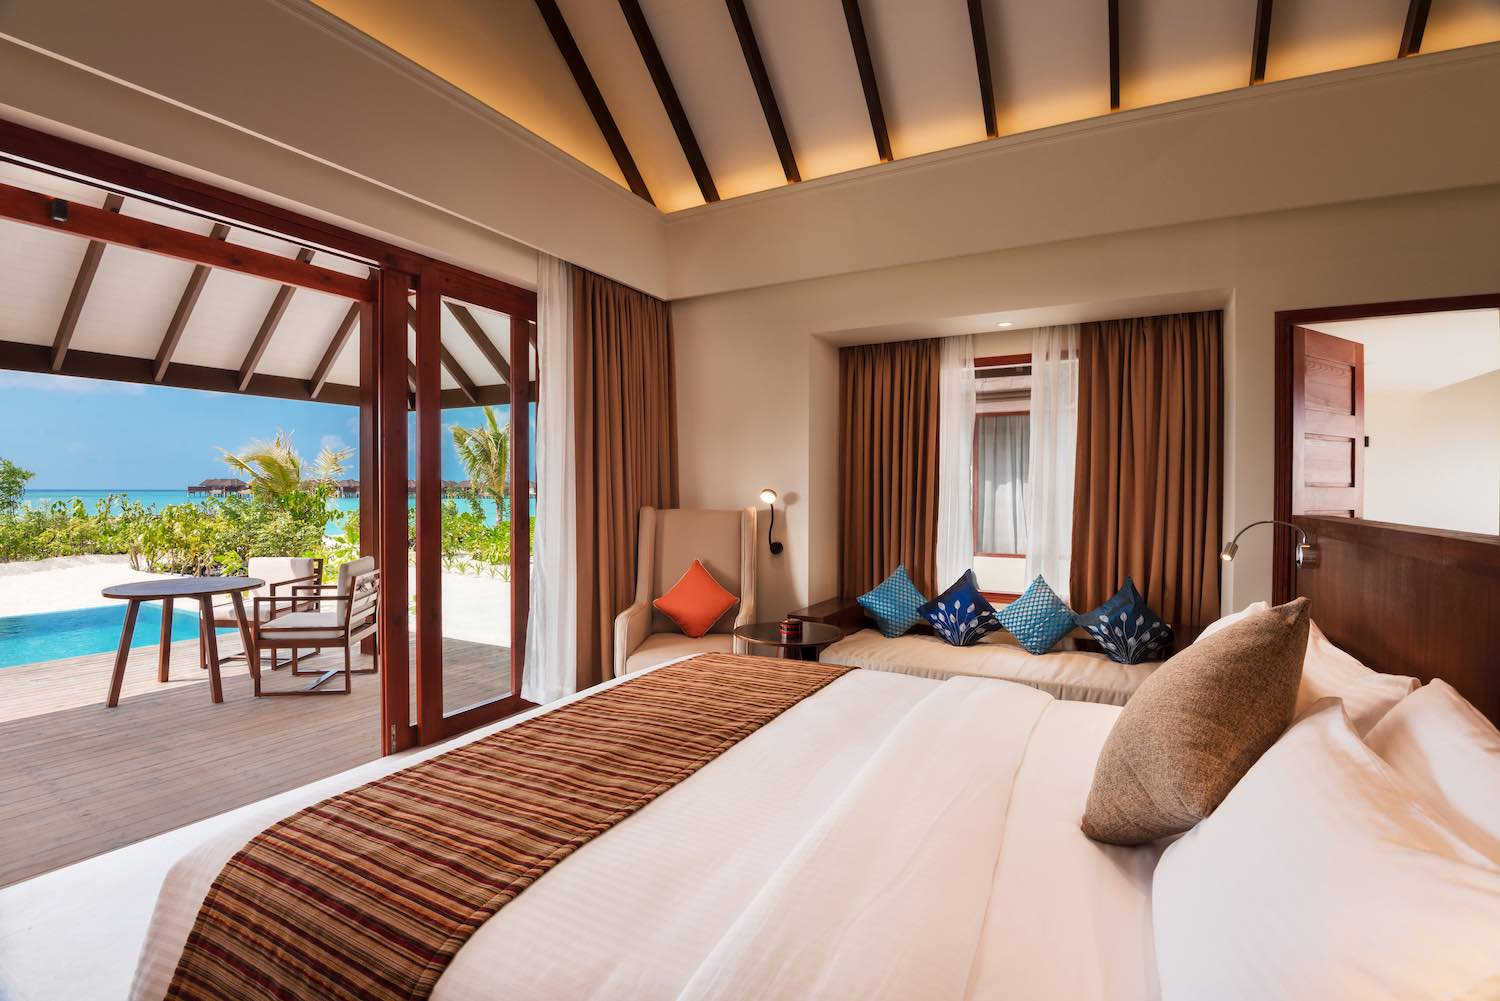 maldives-varu-by-atmosphere-beach-villa-with-pool-bedroom-view-holiday-honeymoon-vacation-invite-to-paradise.jpg